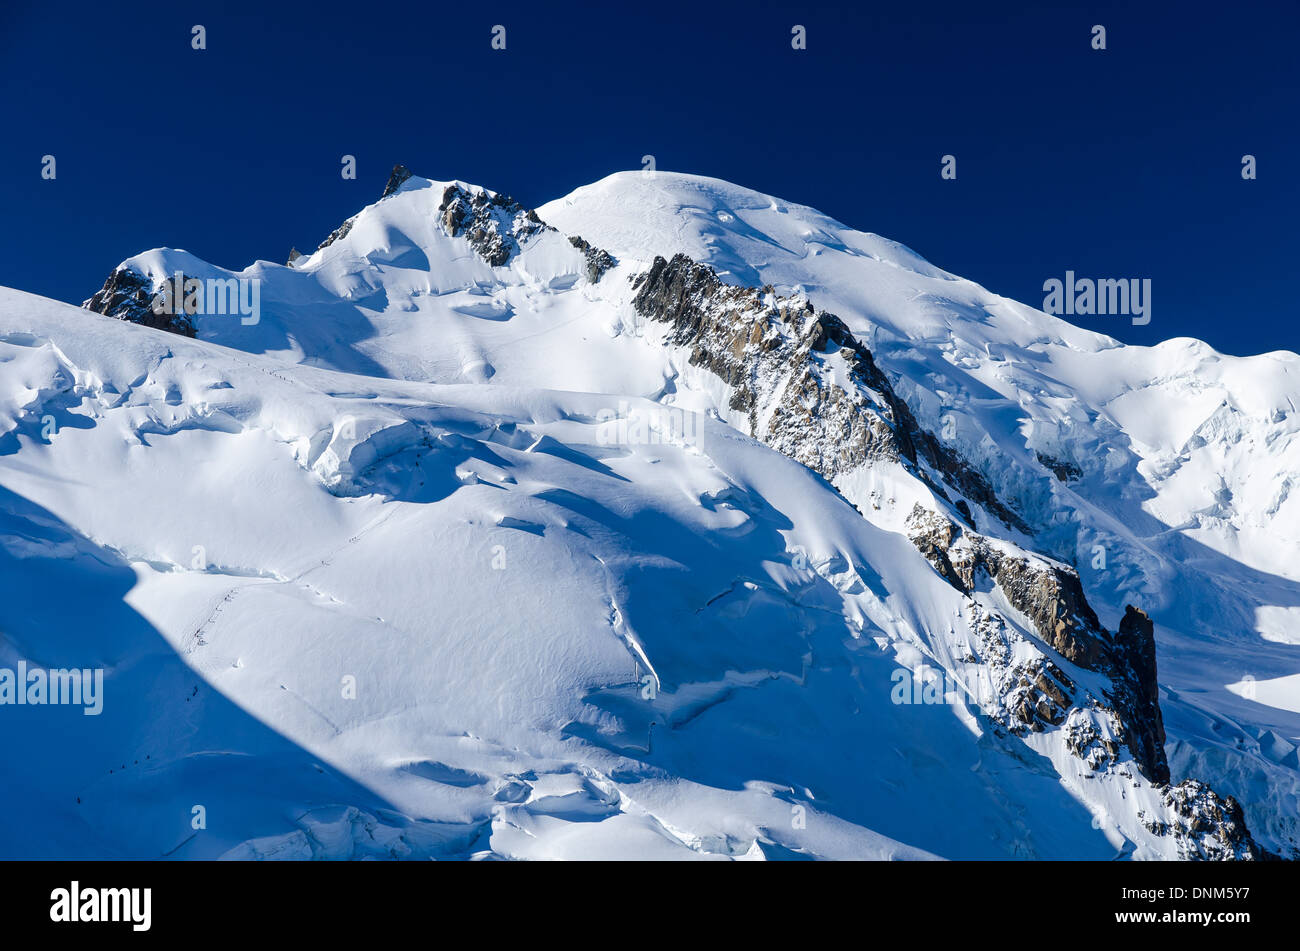 Chamonix, France. Mont Blanc is the highest mountain of Europe (4810 m altitude). - Stock Image